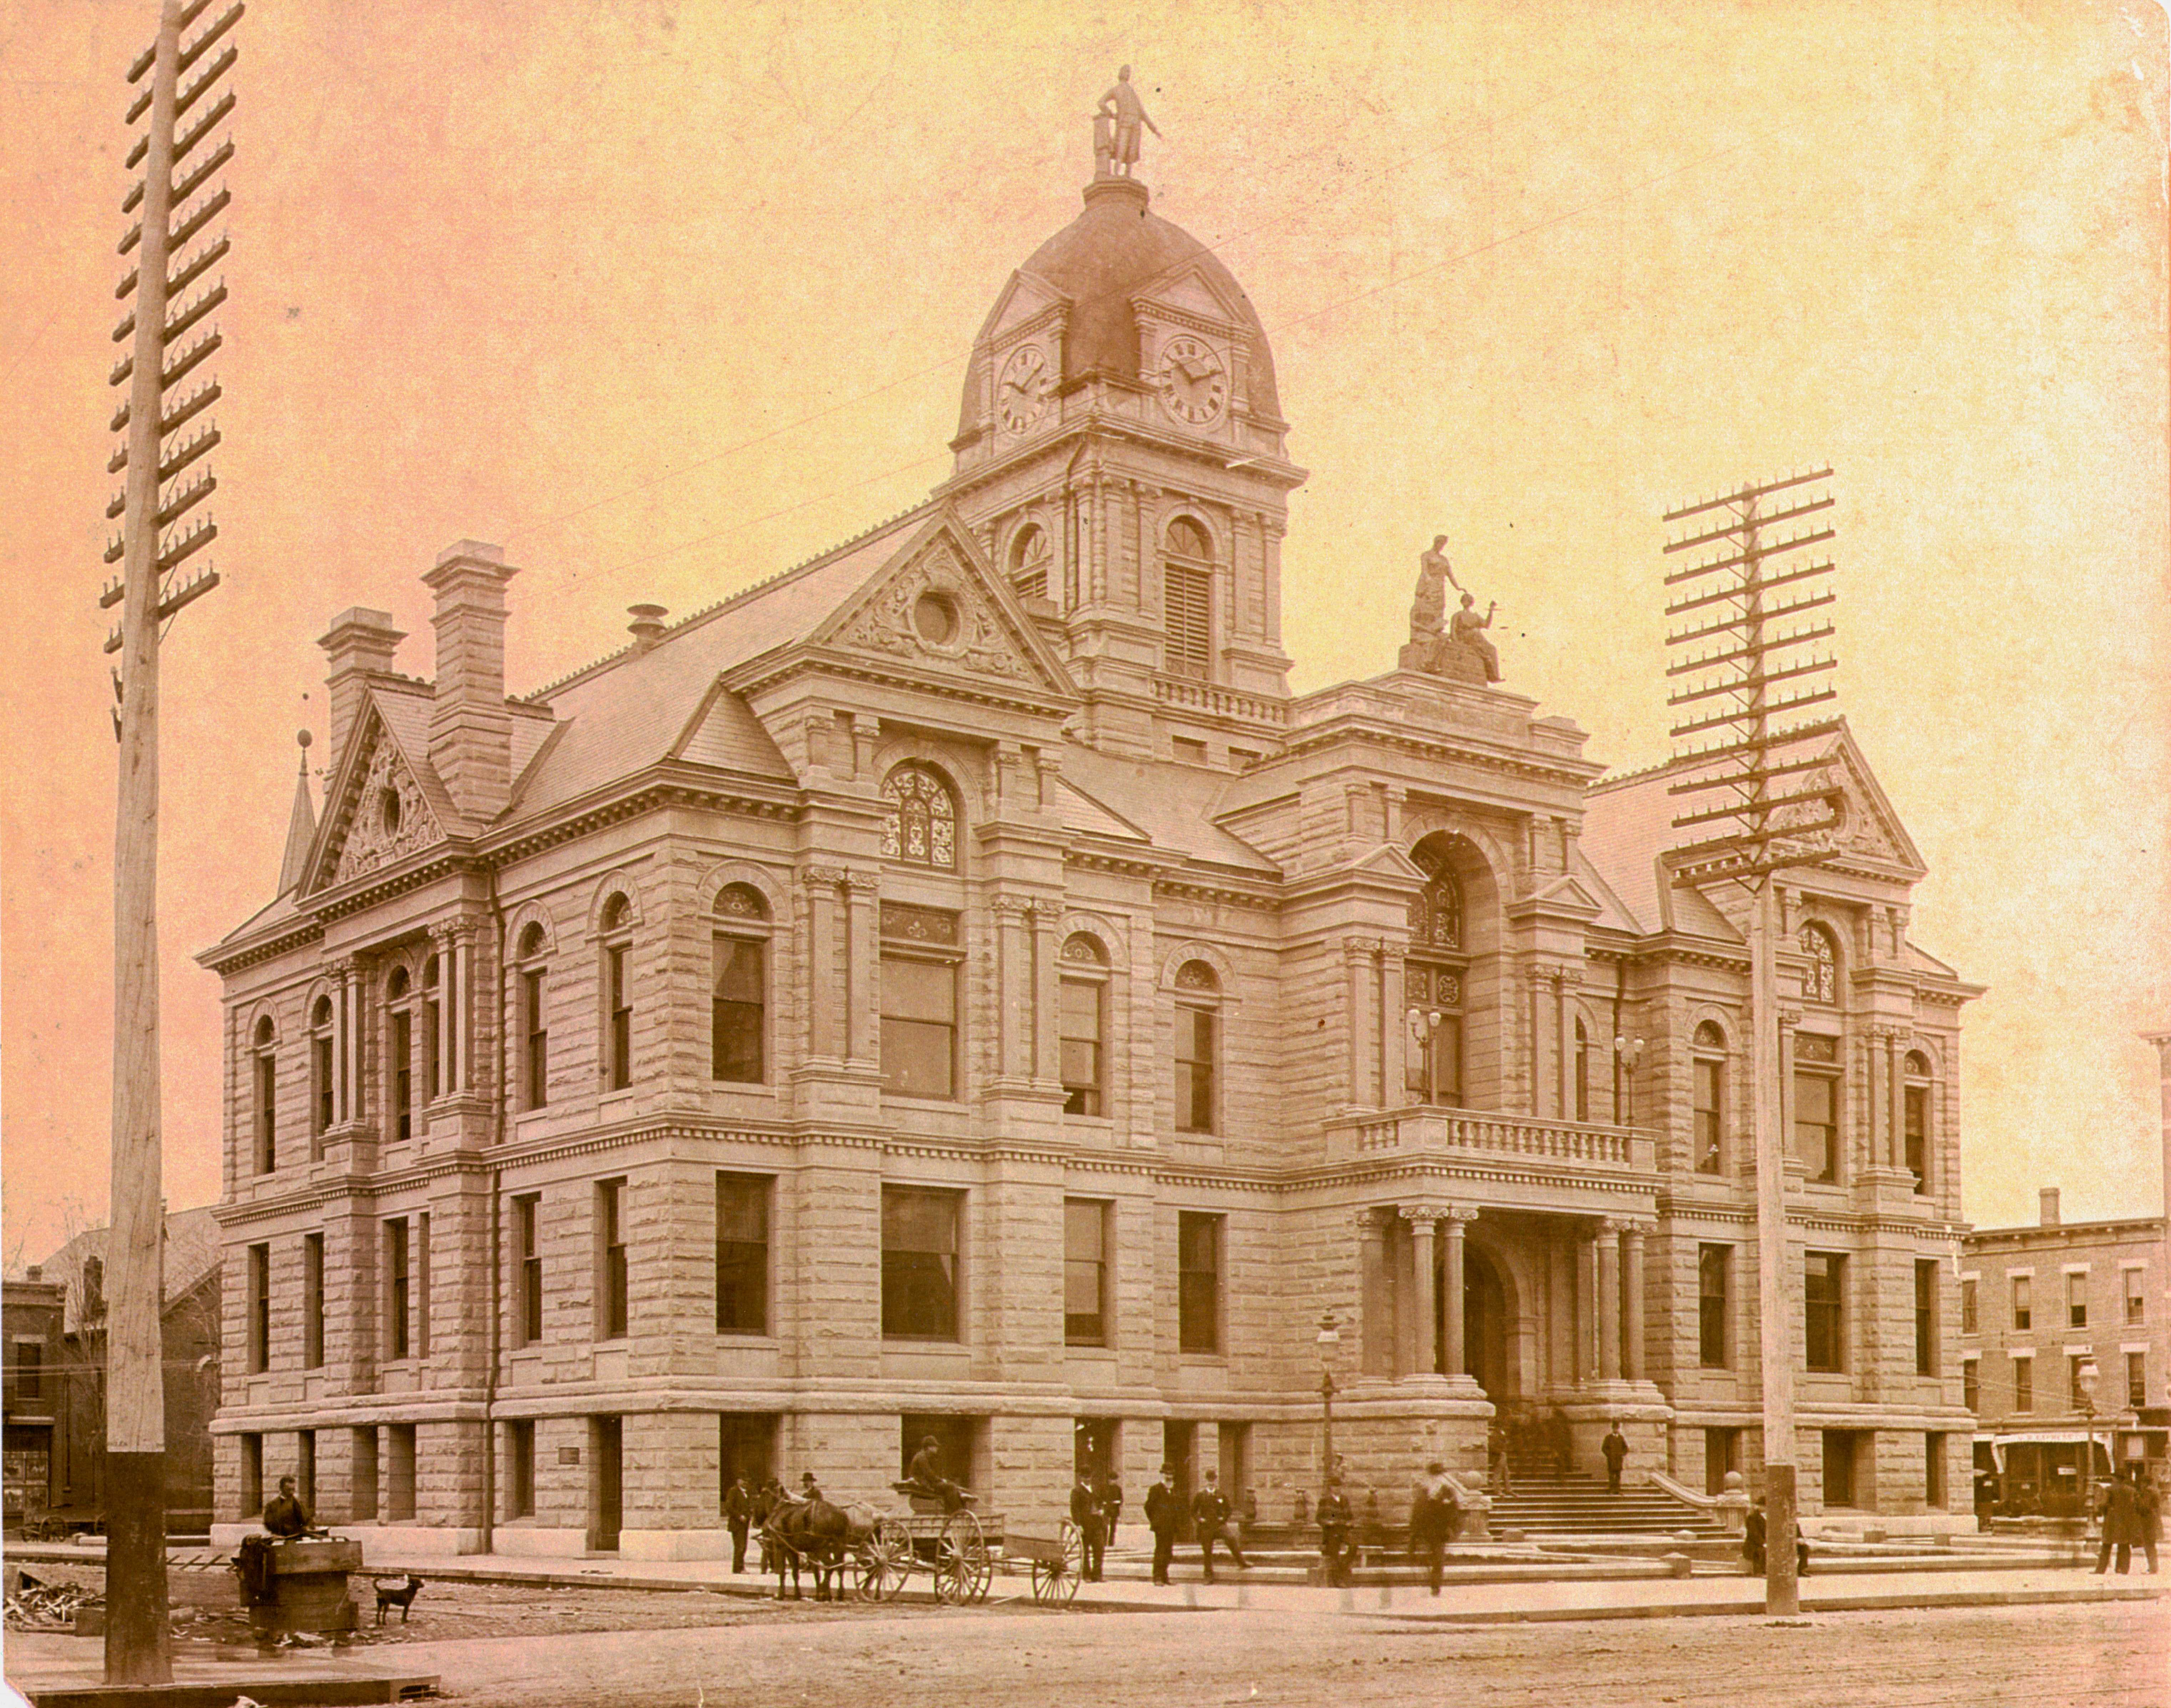 Courthouse in 1888